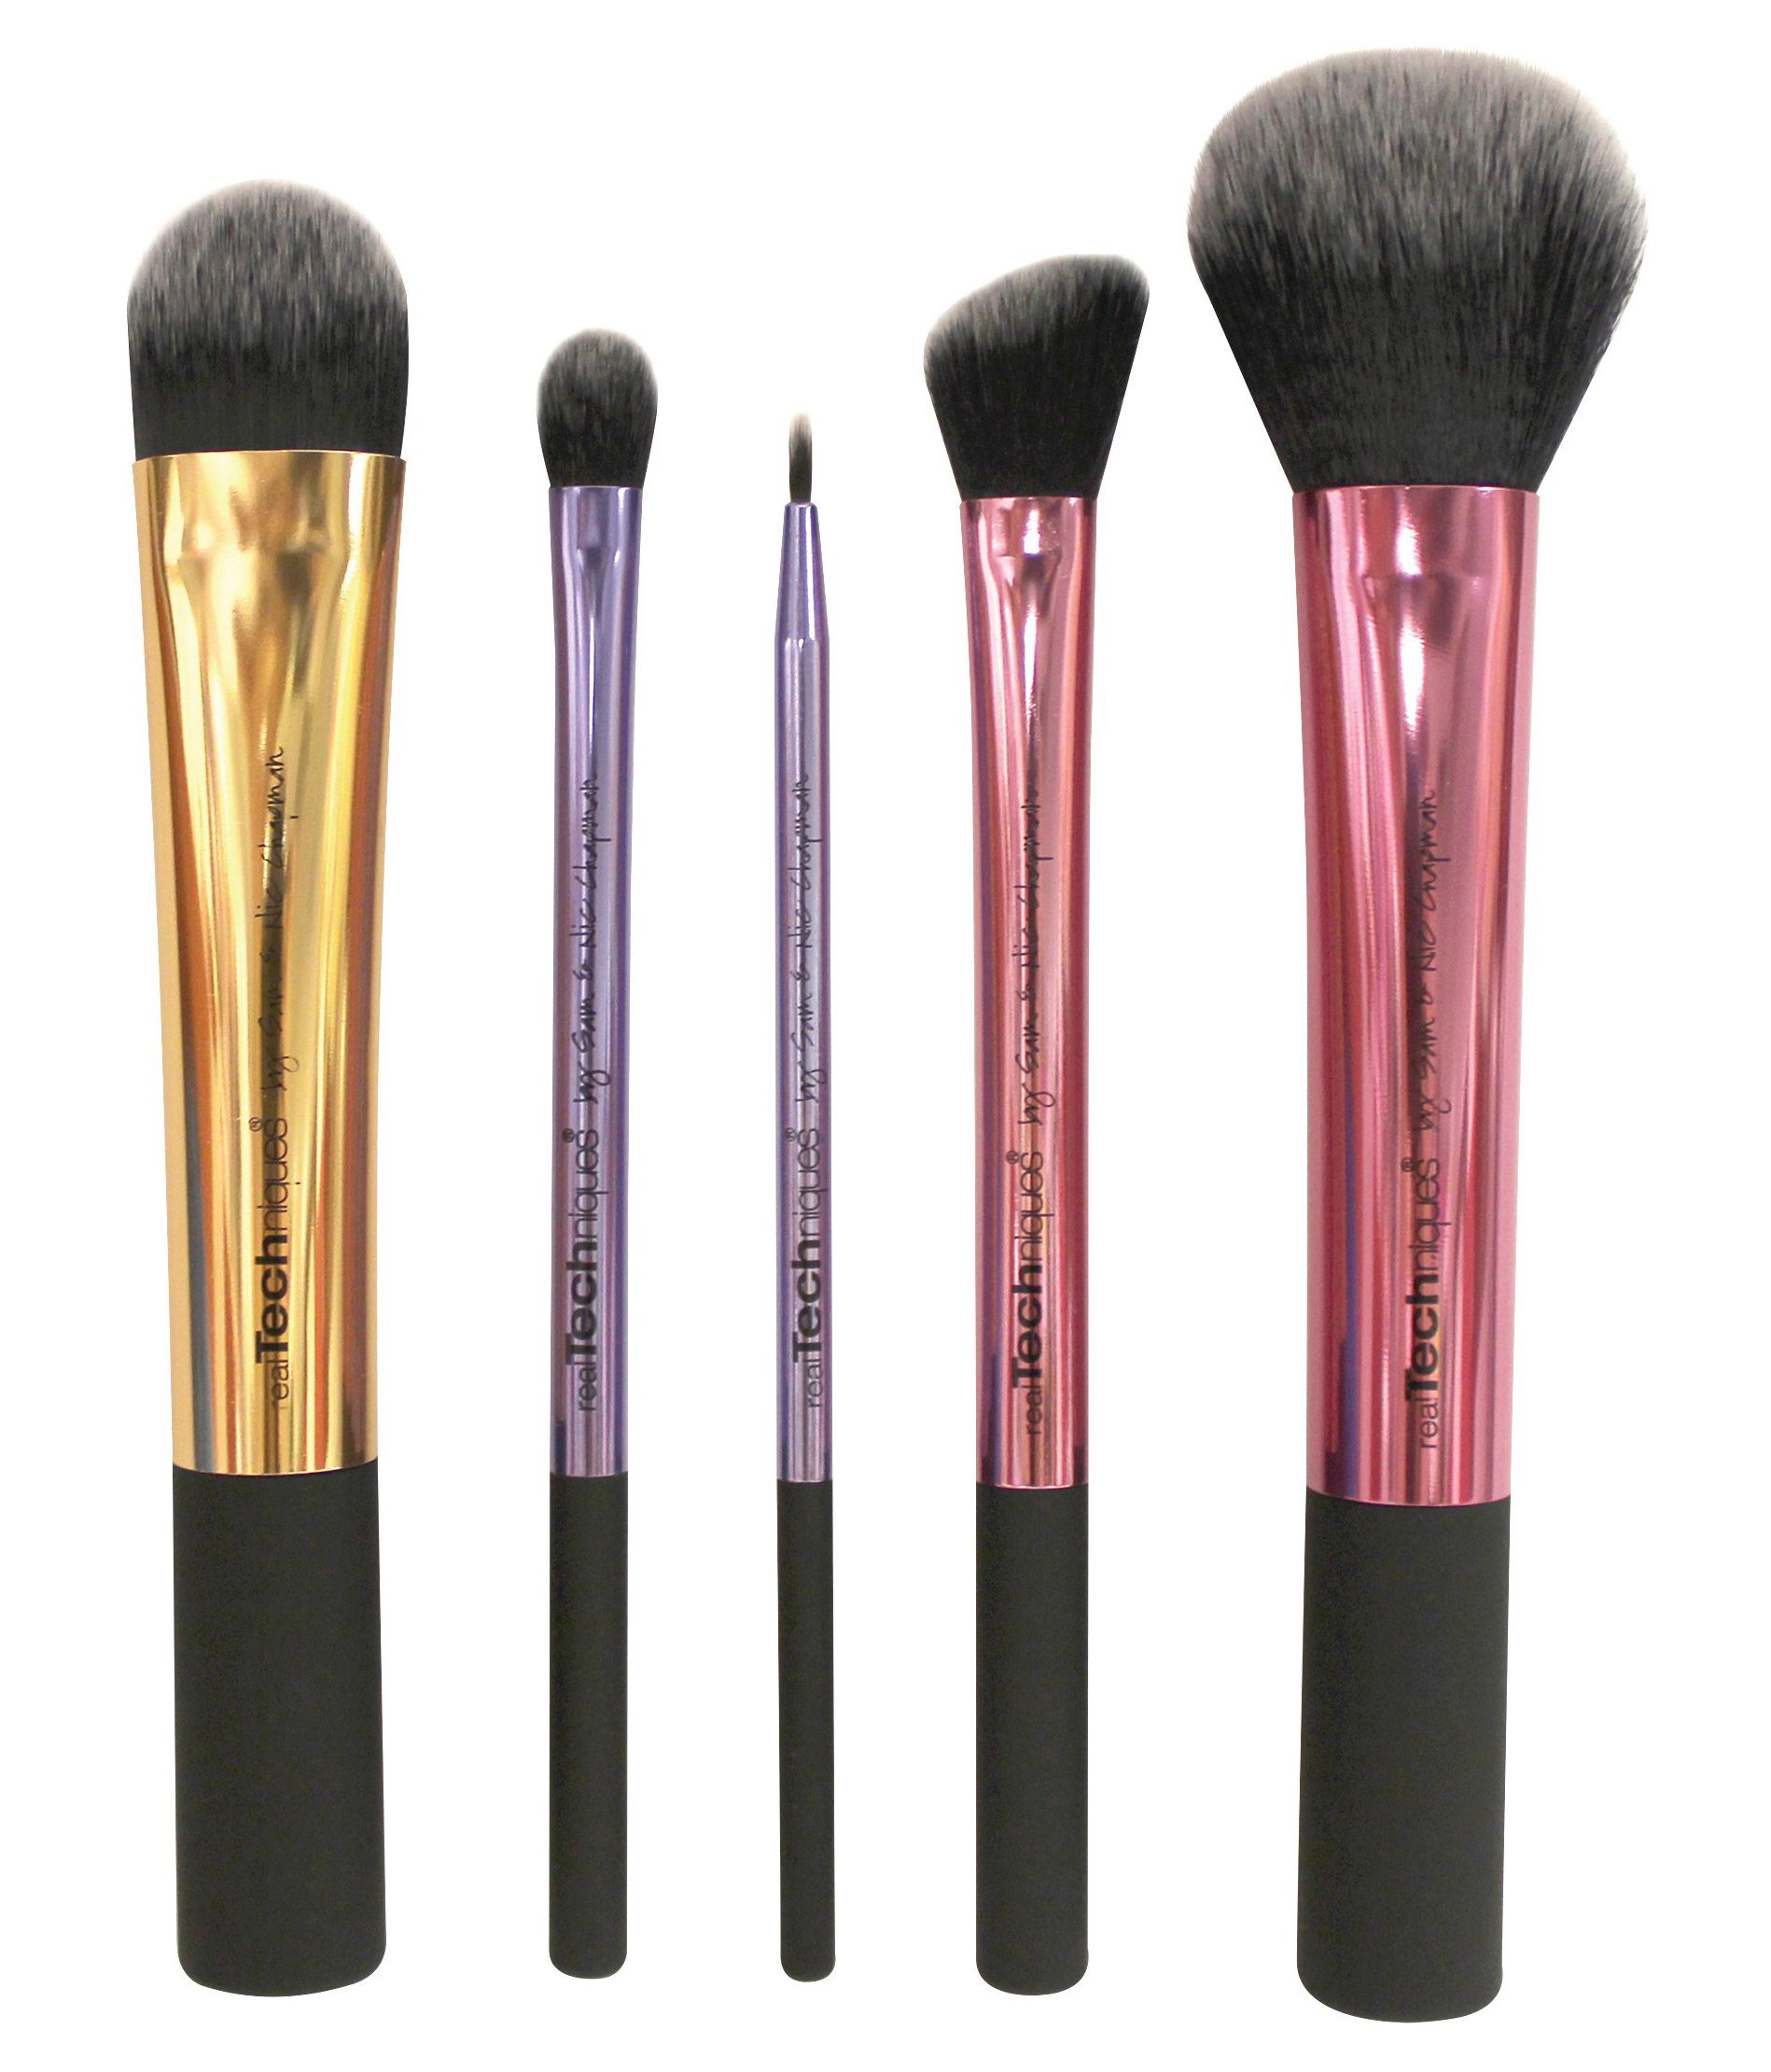 The+Best+Budget-Friendly+Makeup+Brush+Sets +-+Real+Techniques+5+Piece+Brush+Set  +-+from+InStyle.com